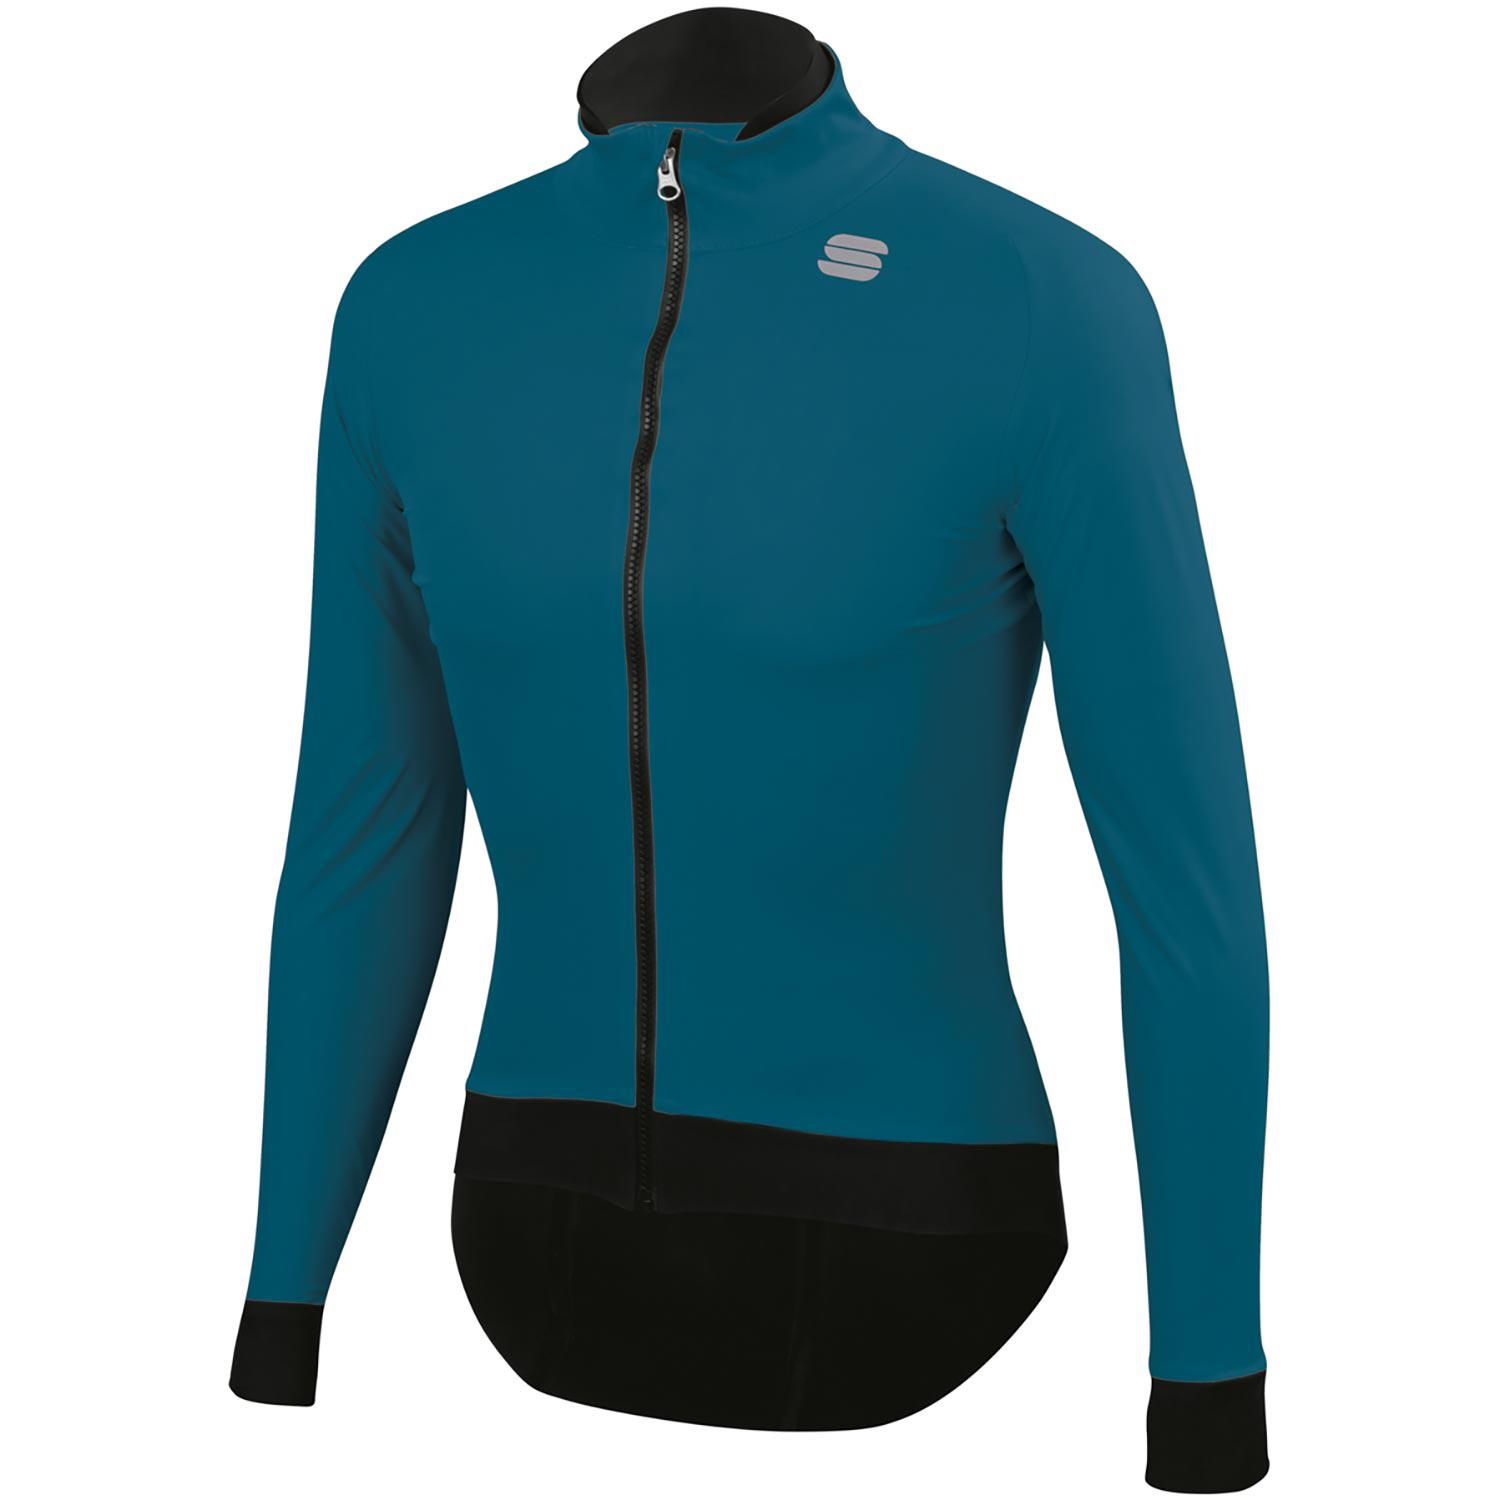 Sportful-Sportful Fiandre Pro Jacket-Blu Corsair-S-SF195004342-saddleback-elite-performance-cycling